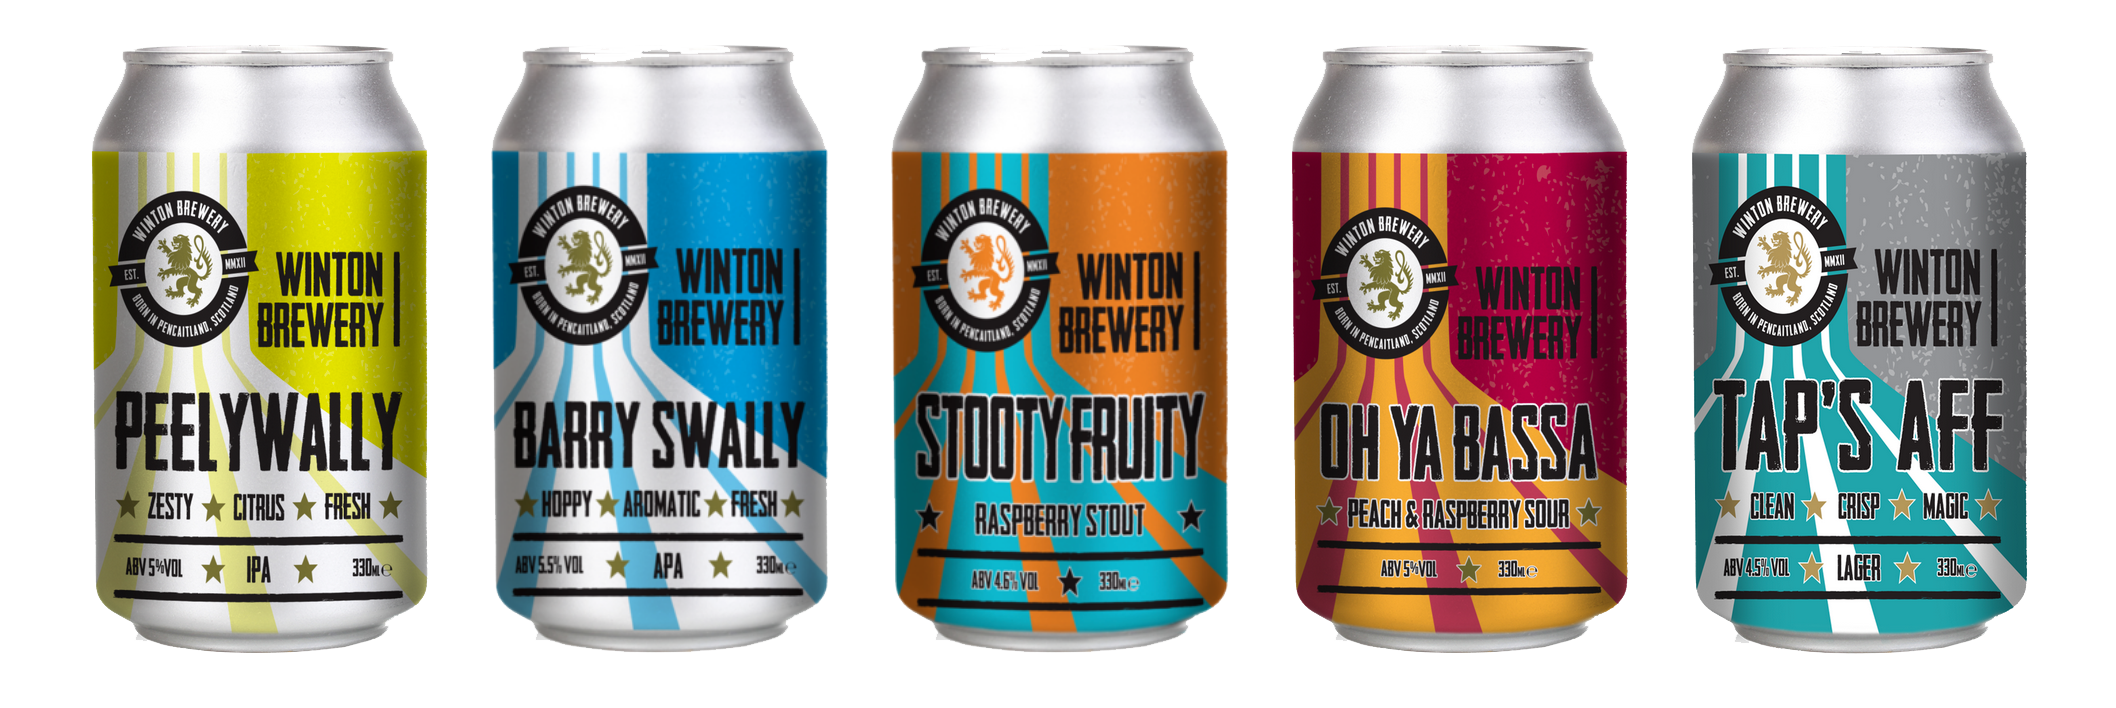 https://wintonbrewery.com/wp-content/uploads/2020/07/all-cans.png